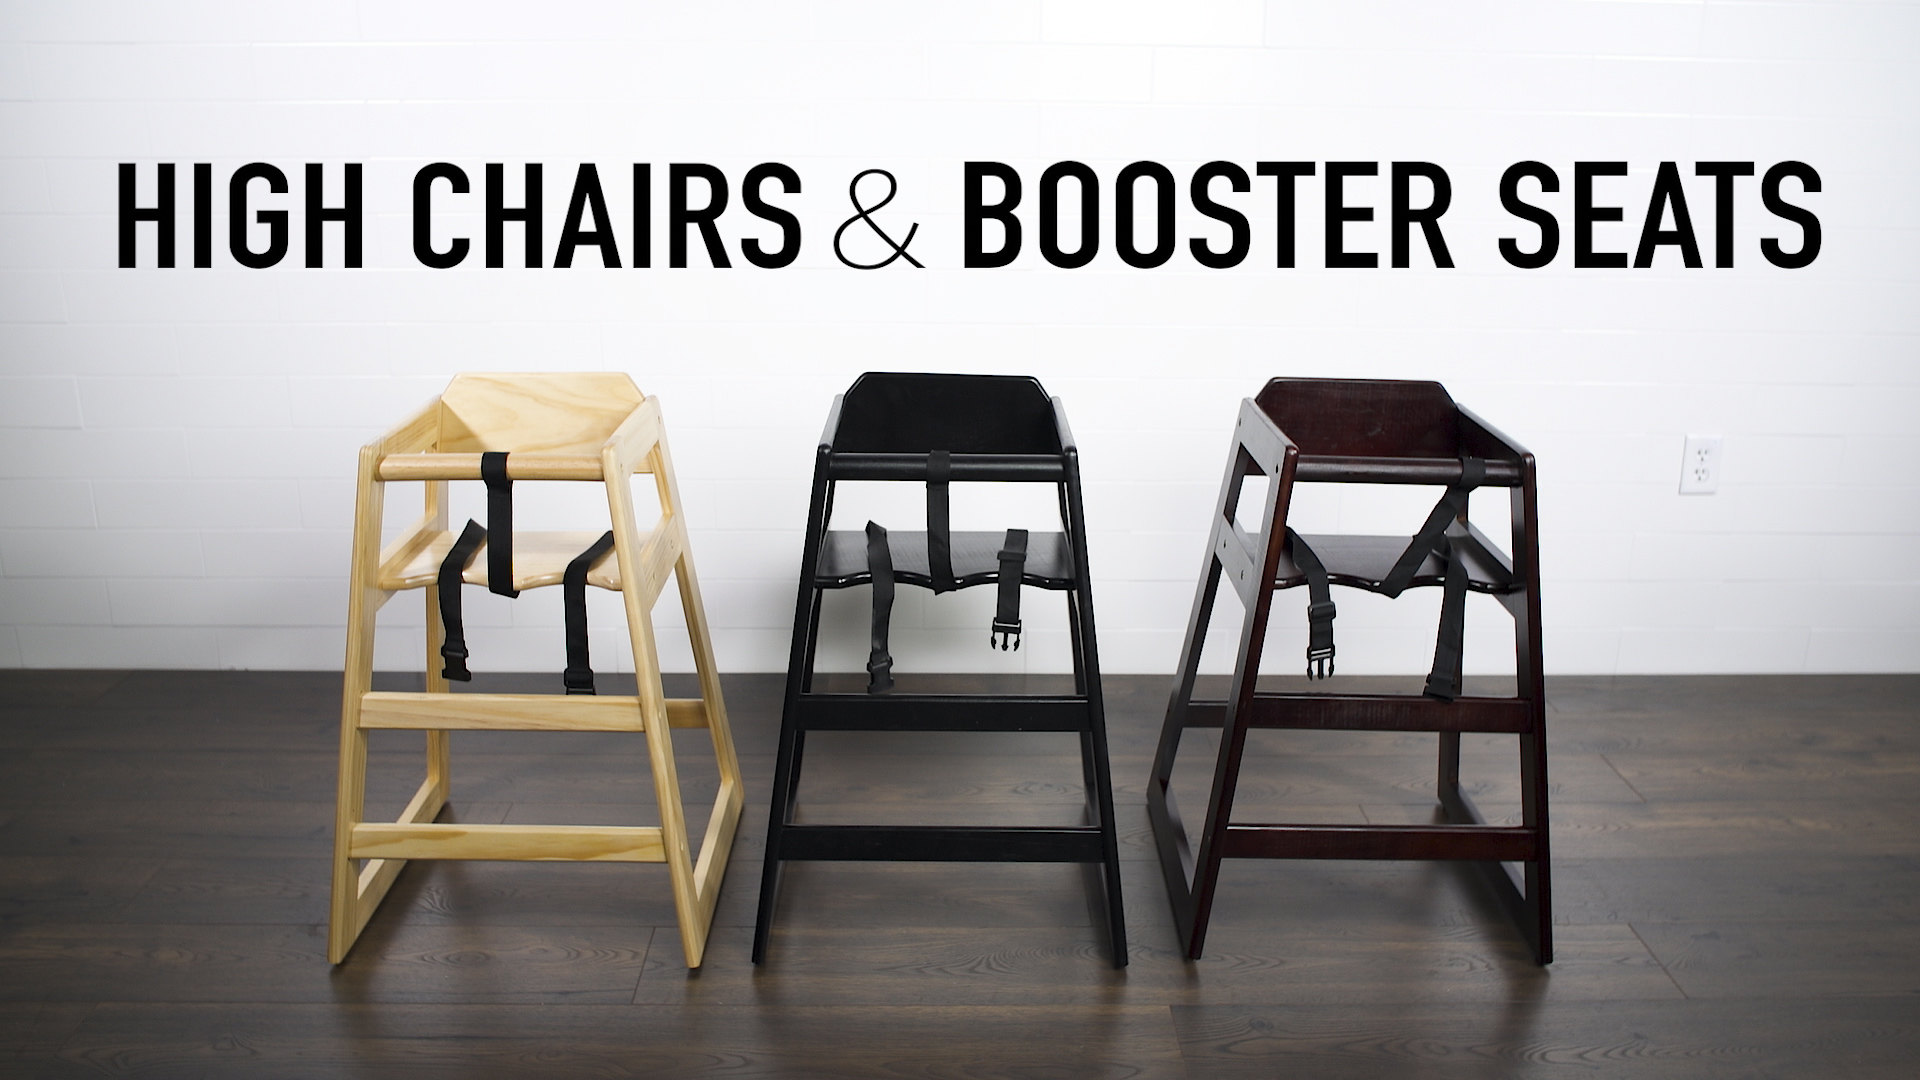 Lancaster Table Seating High Chairs Booster Seats Video Webstaurant